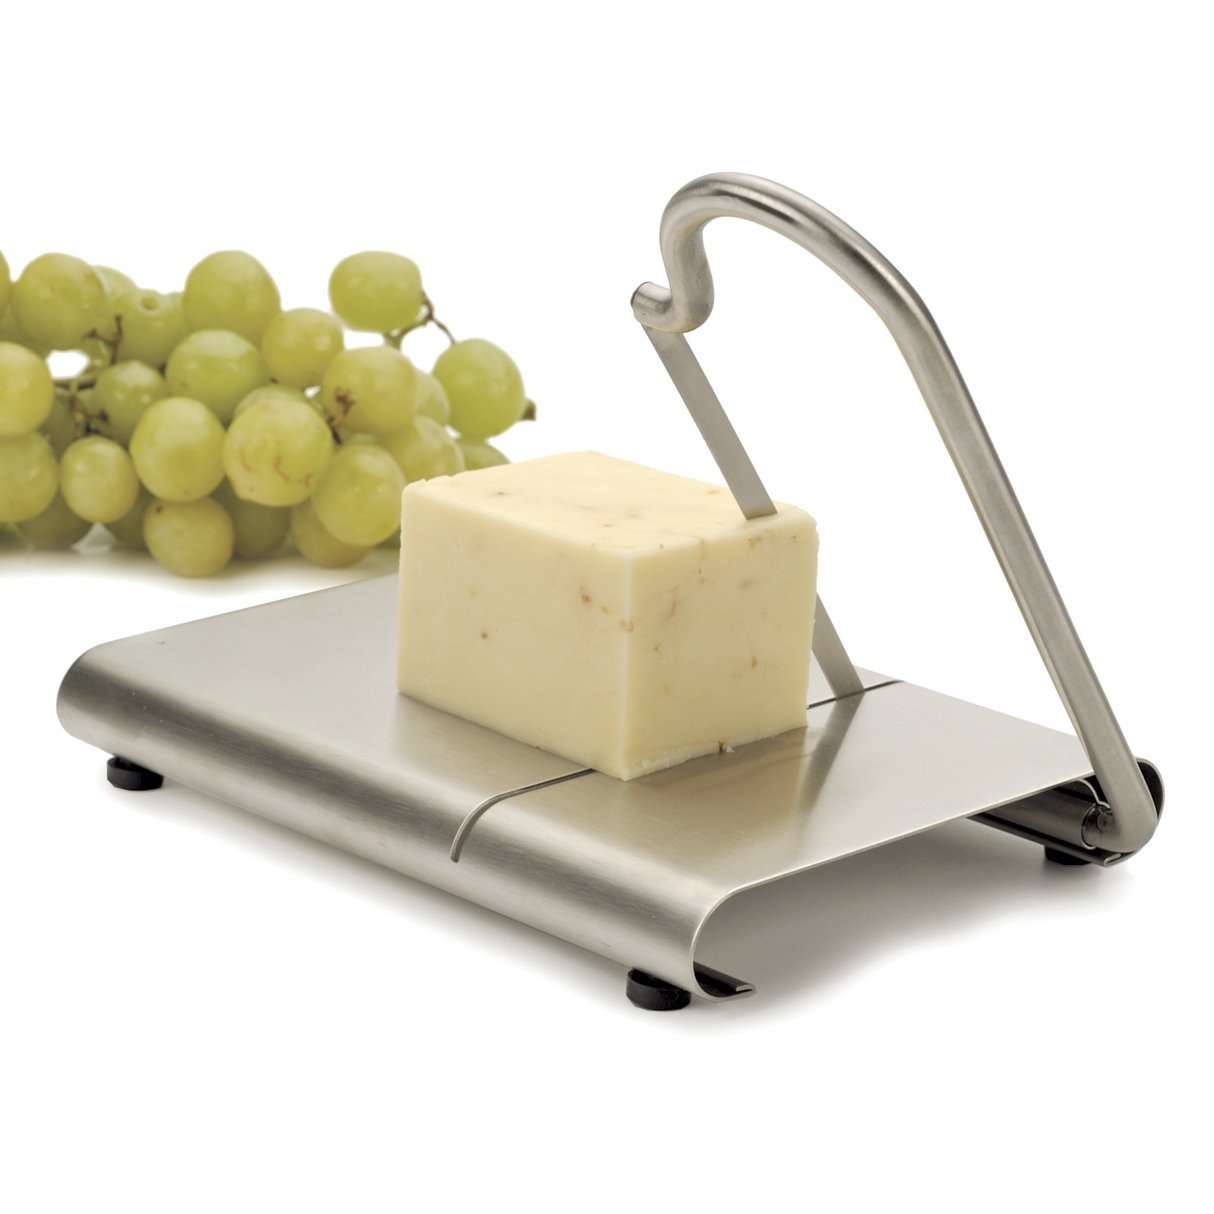 RSVP Endurance Stainless Steel Modern Cheese Slicer with Stainless Steel Blade RSVP International FBA_CHZ-BL